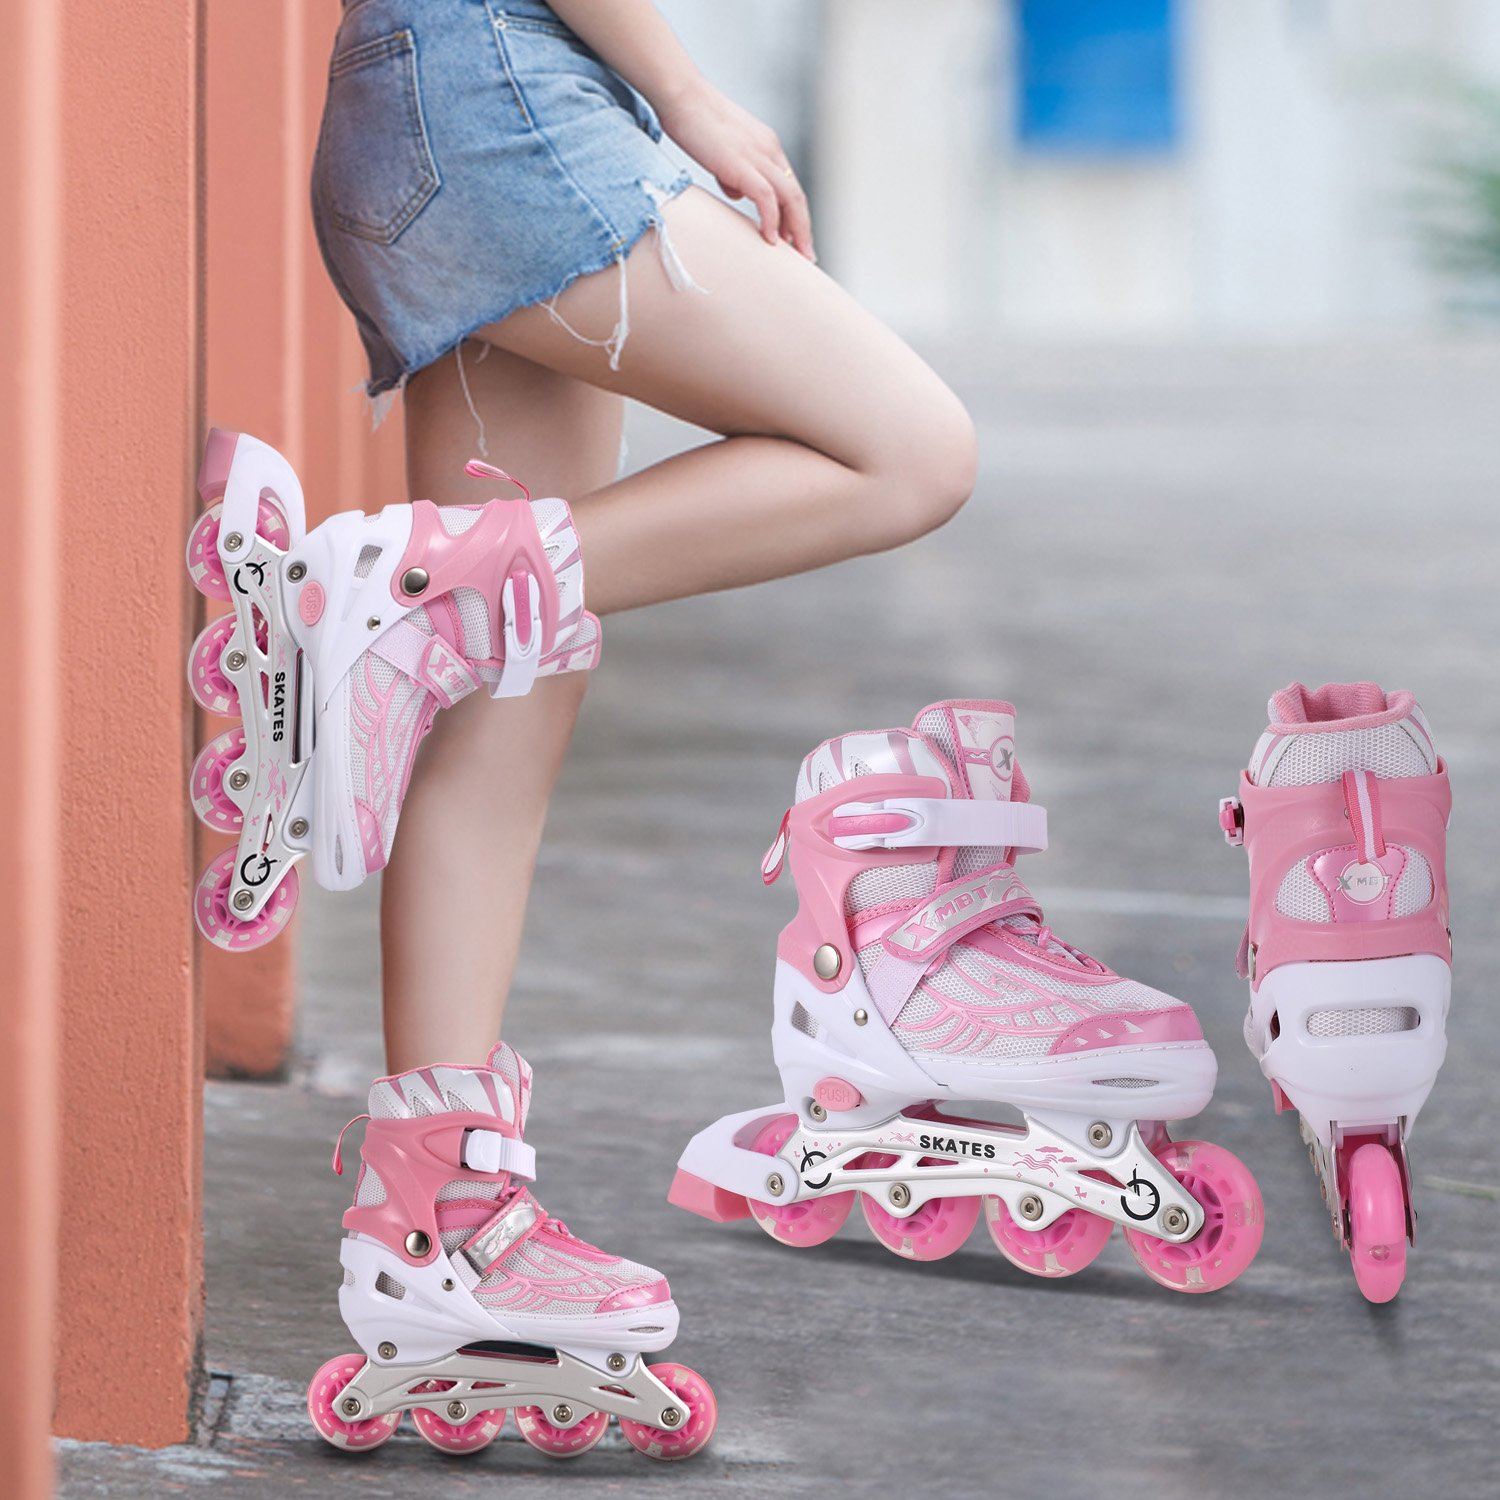 Anfan 3 Sizes Adjustable Inline Skates Adults Kids Rollerblades with Breathable Mesh Eight Illuminating Wheels Aluminum Frame(US Stock) (Pink, US 5-8)